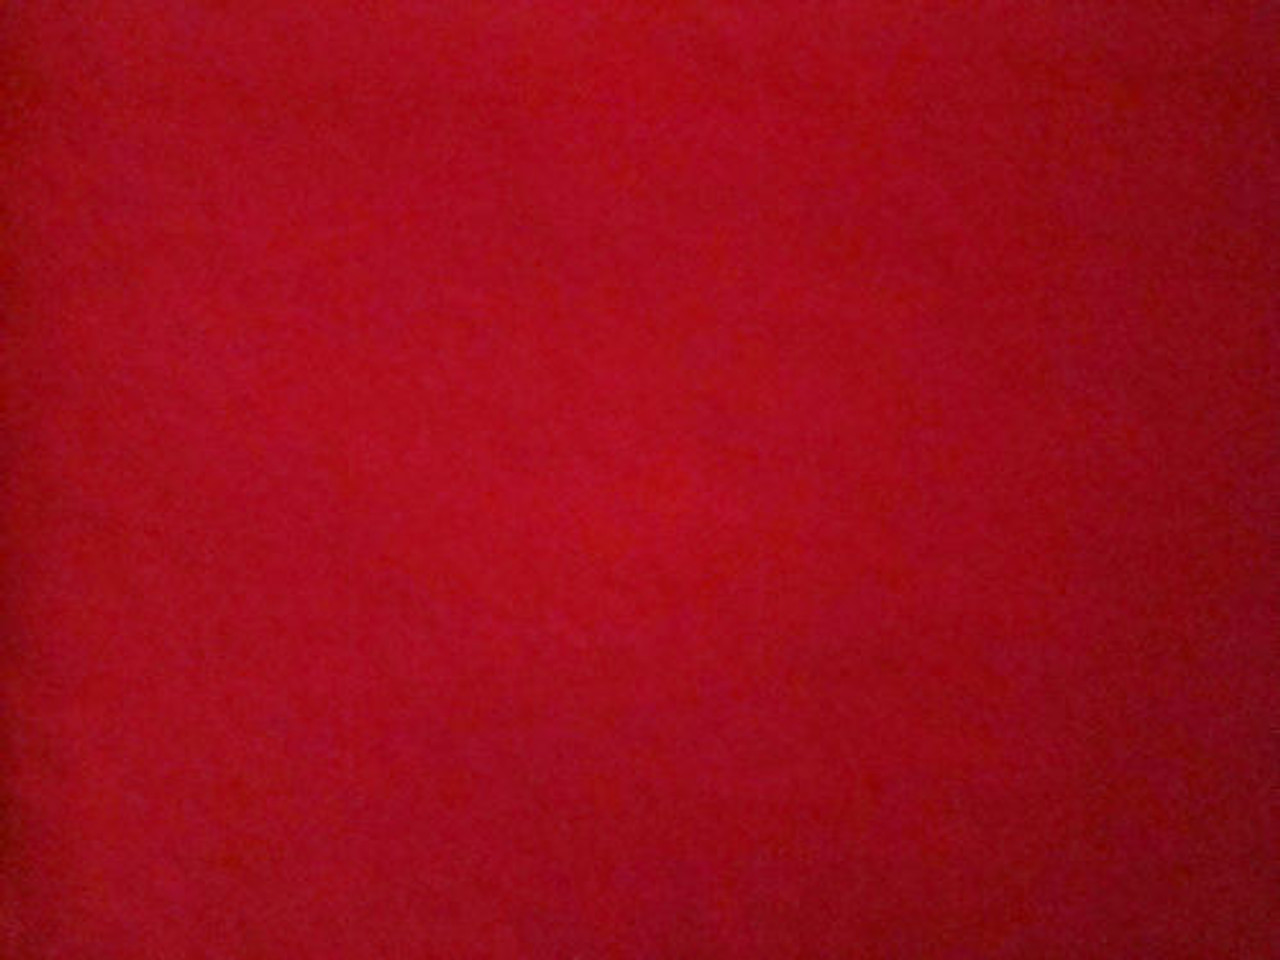 Red Fabric 100% cotton